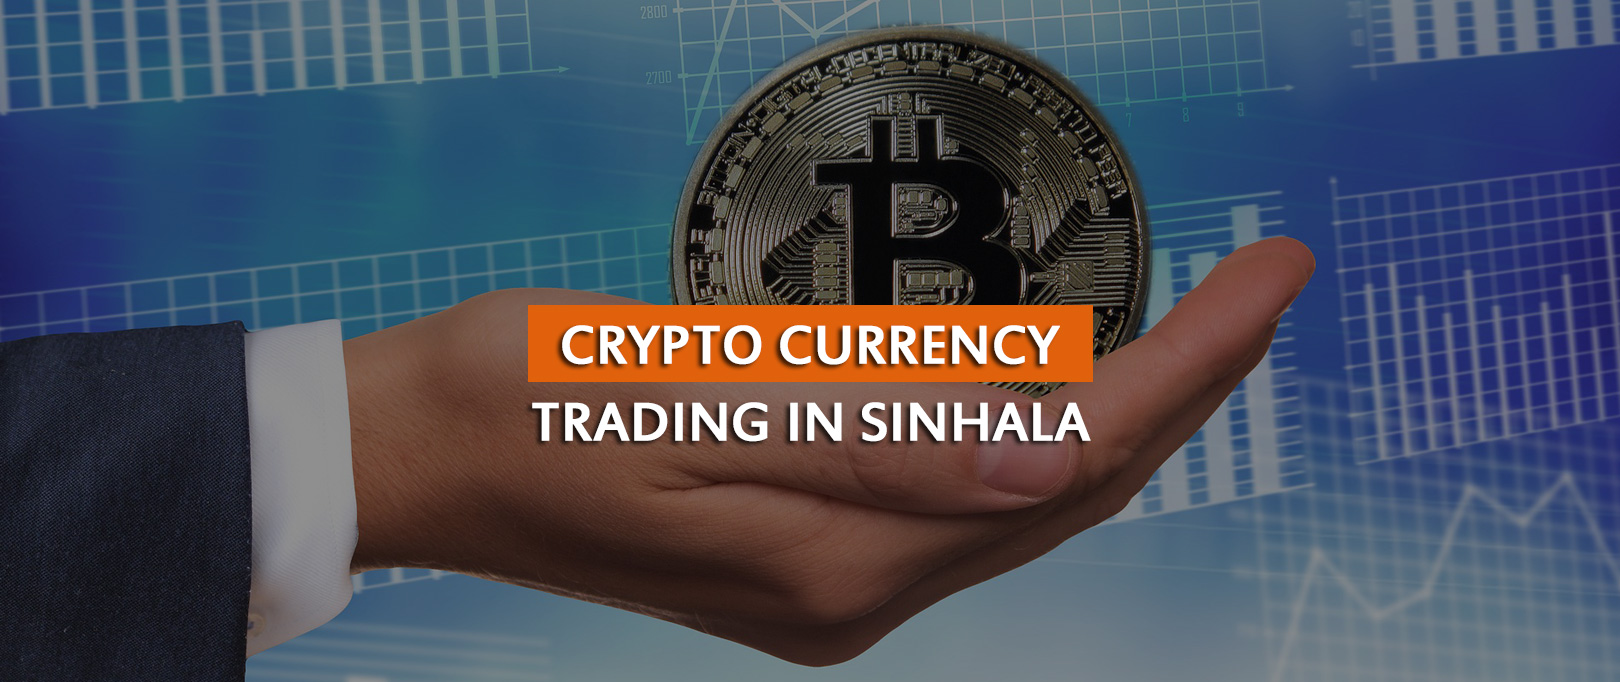 crypto currency trading in sinhala by prathilaba